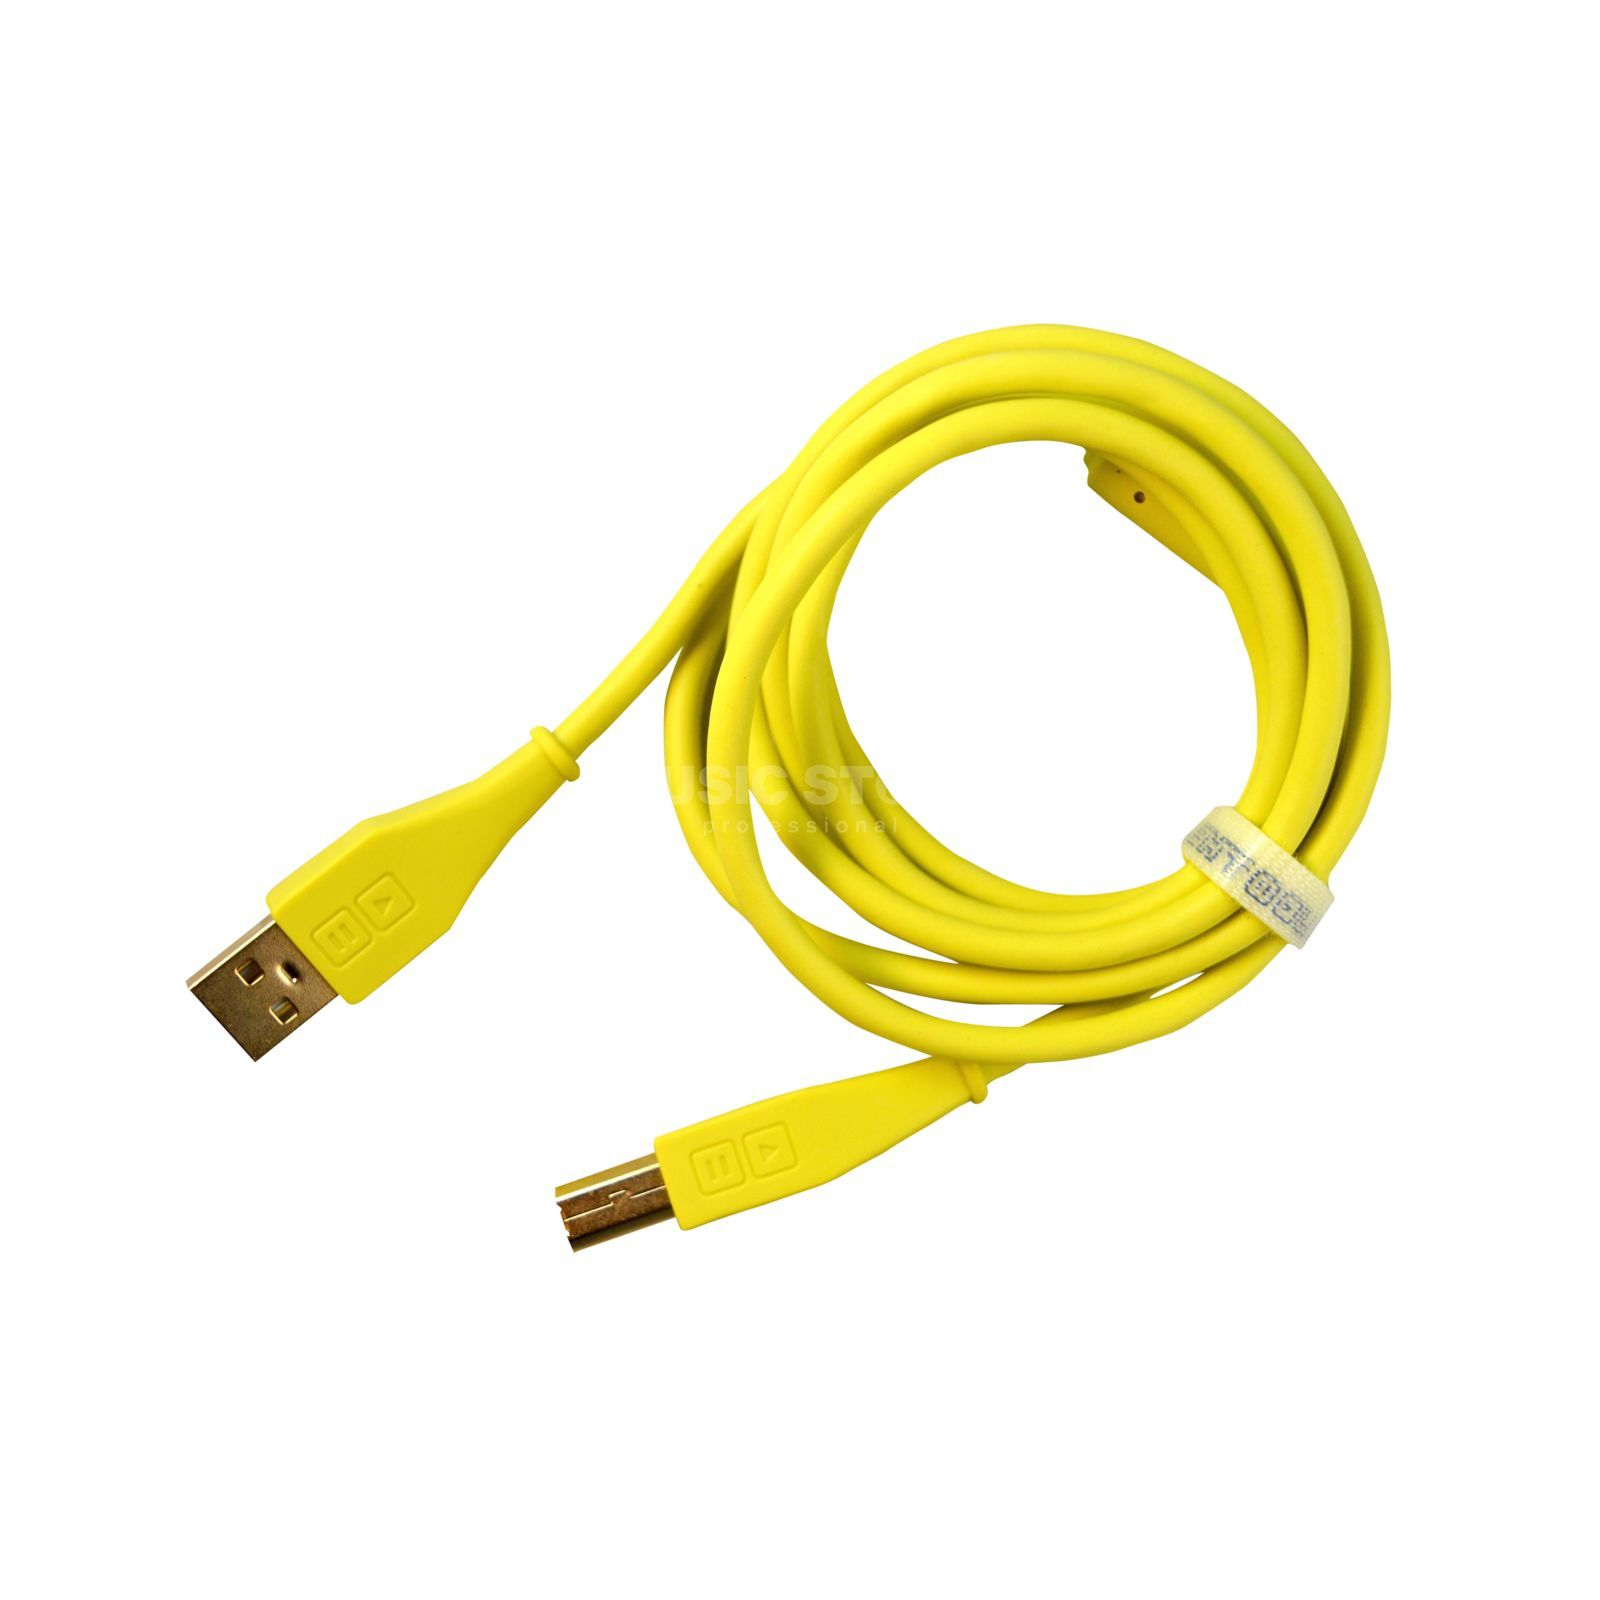 DJ TECHTOOLS DJTT USB Chroma Cable Green 1.5m, straight Product Image